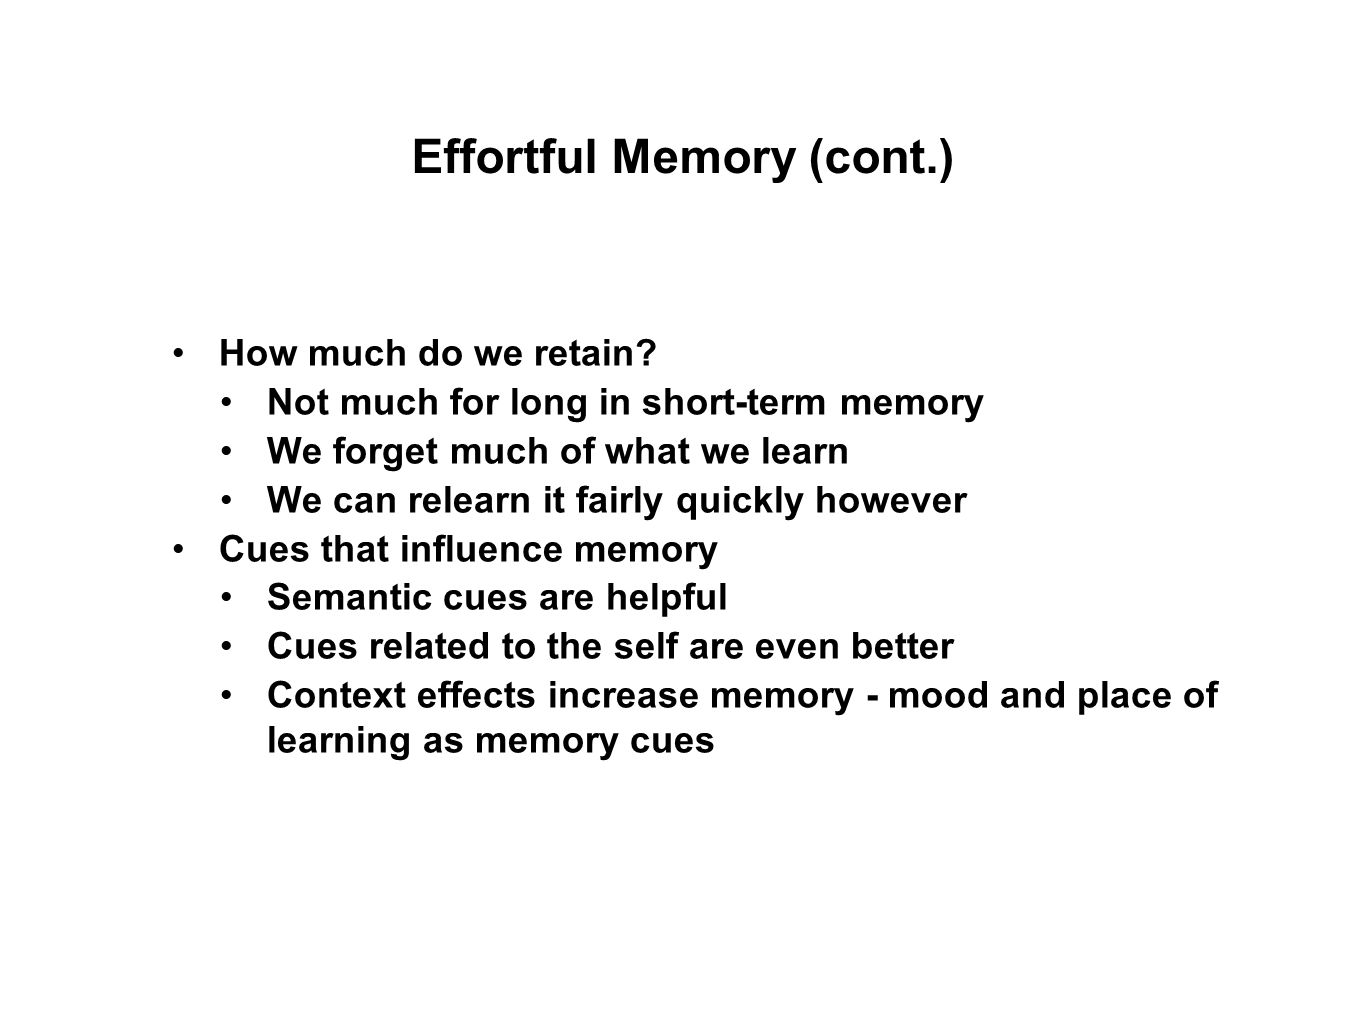 How much do we retain? Not much for long in short-term memory We forget much of what we learn We can relearn it fairly quickly however Cues that influ